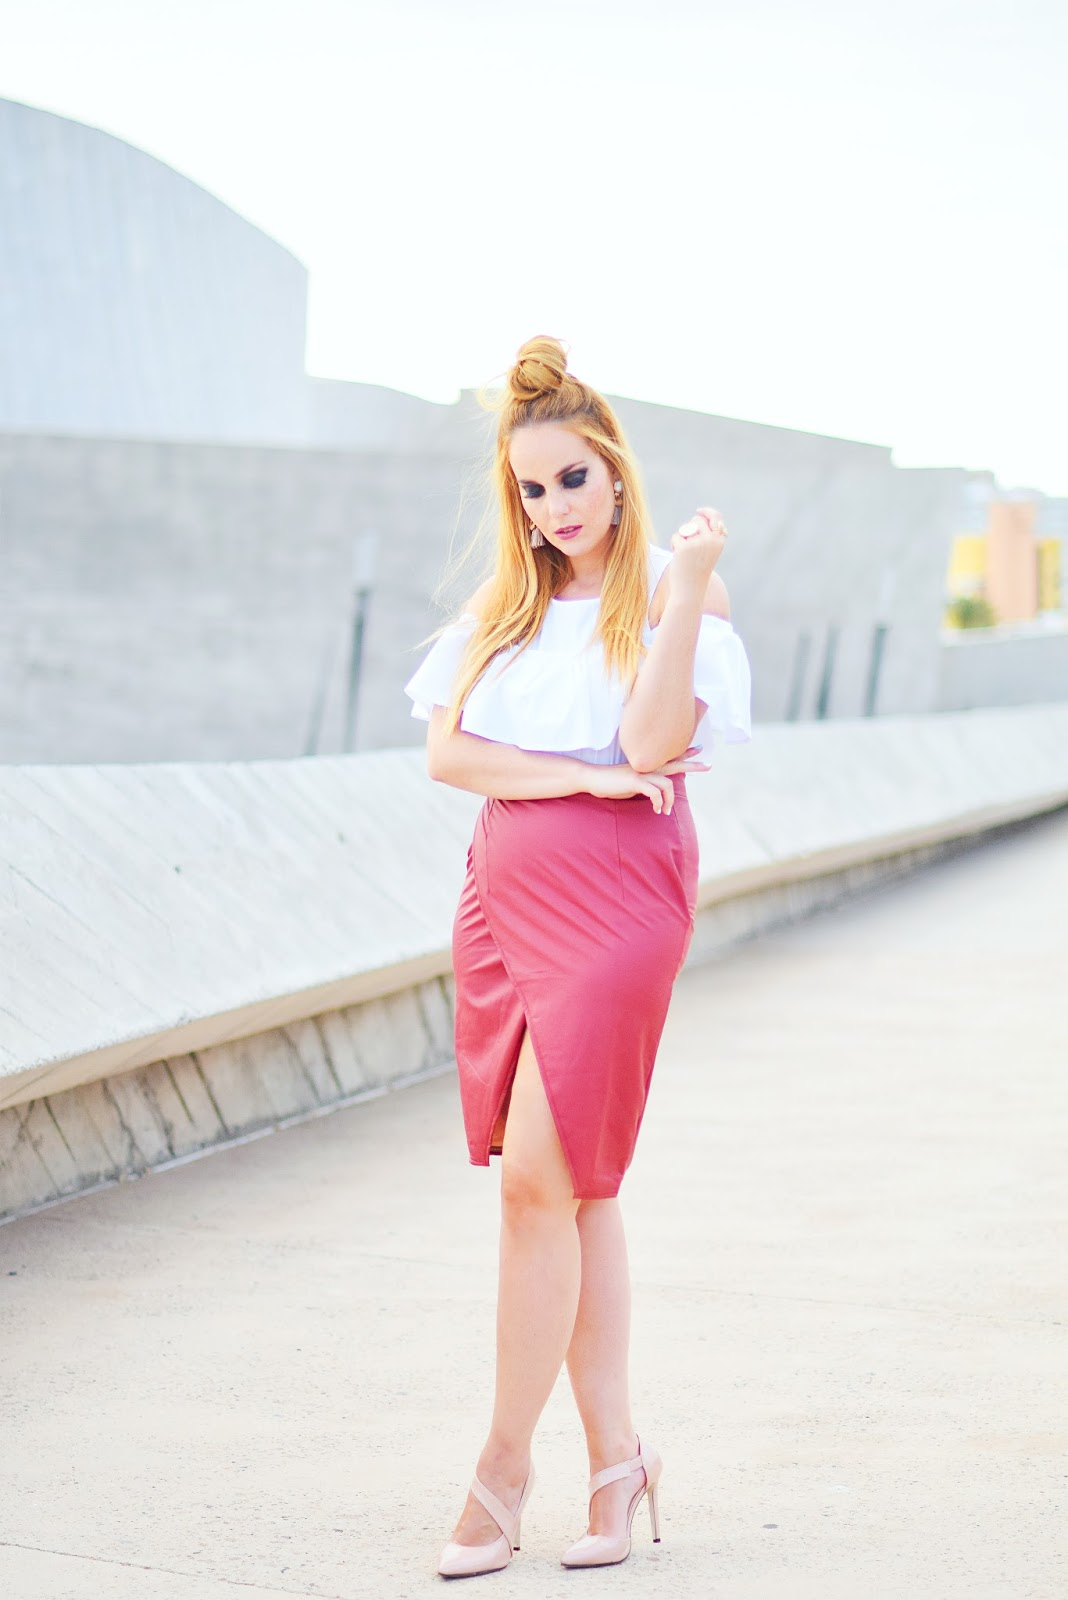 NERY HDEZ, off shoulder, split skirt, top knot, lovelywholesale, tassel earrings